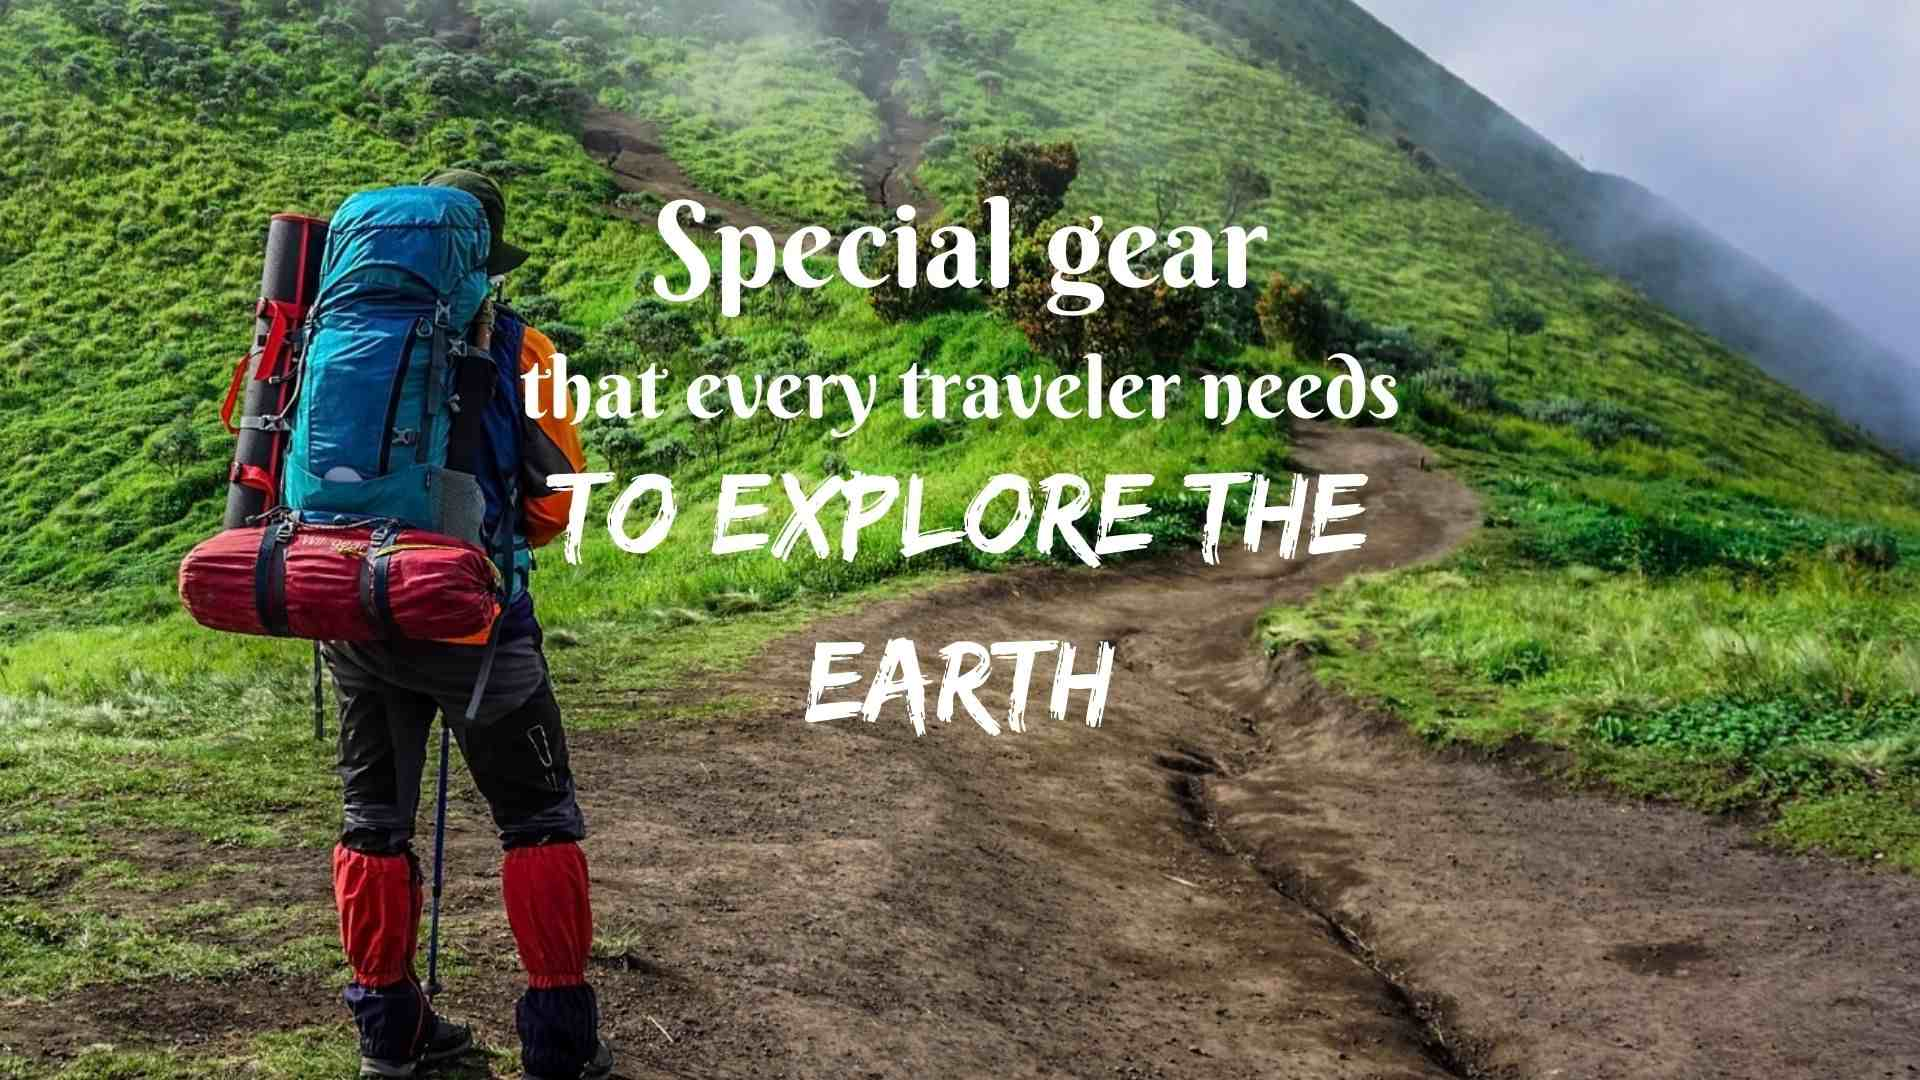 Special gear that every traveler needs to explore the Earth